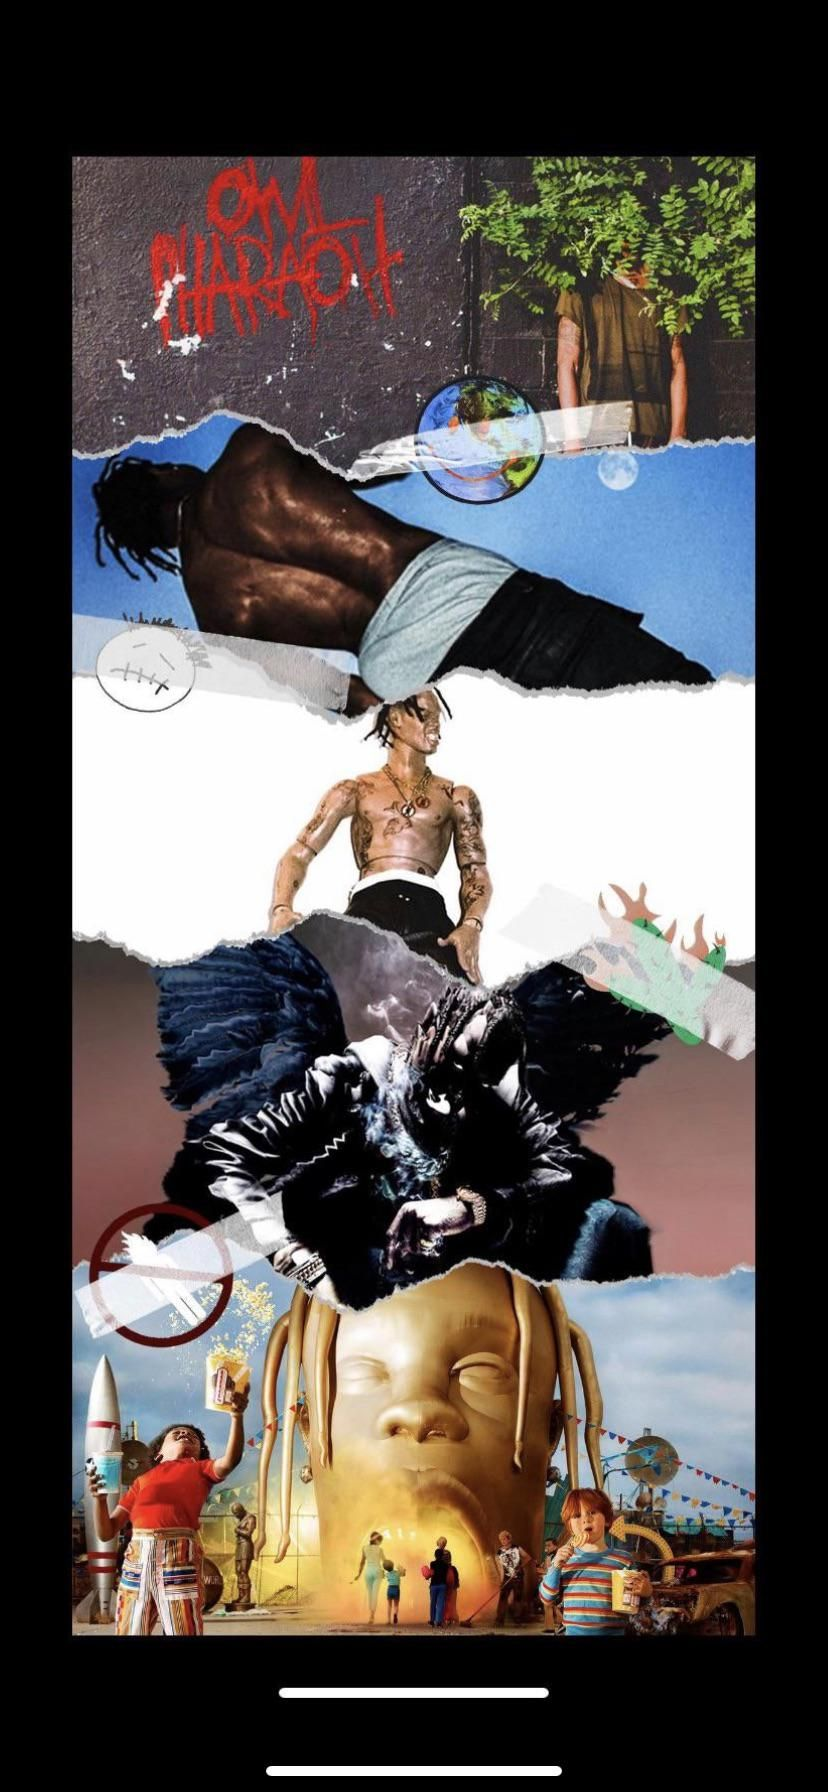 Hey guys I have this Travis Scott wallpaper for my phone